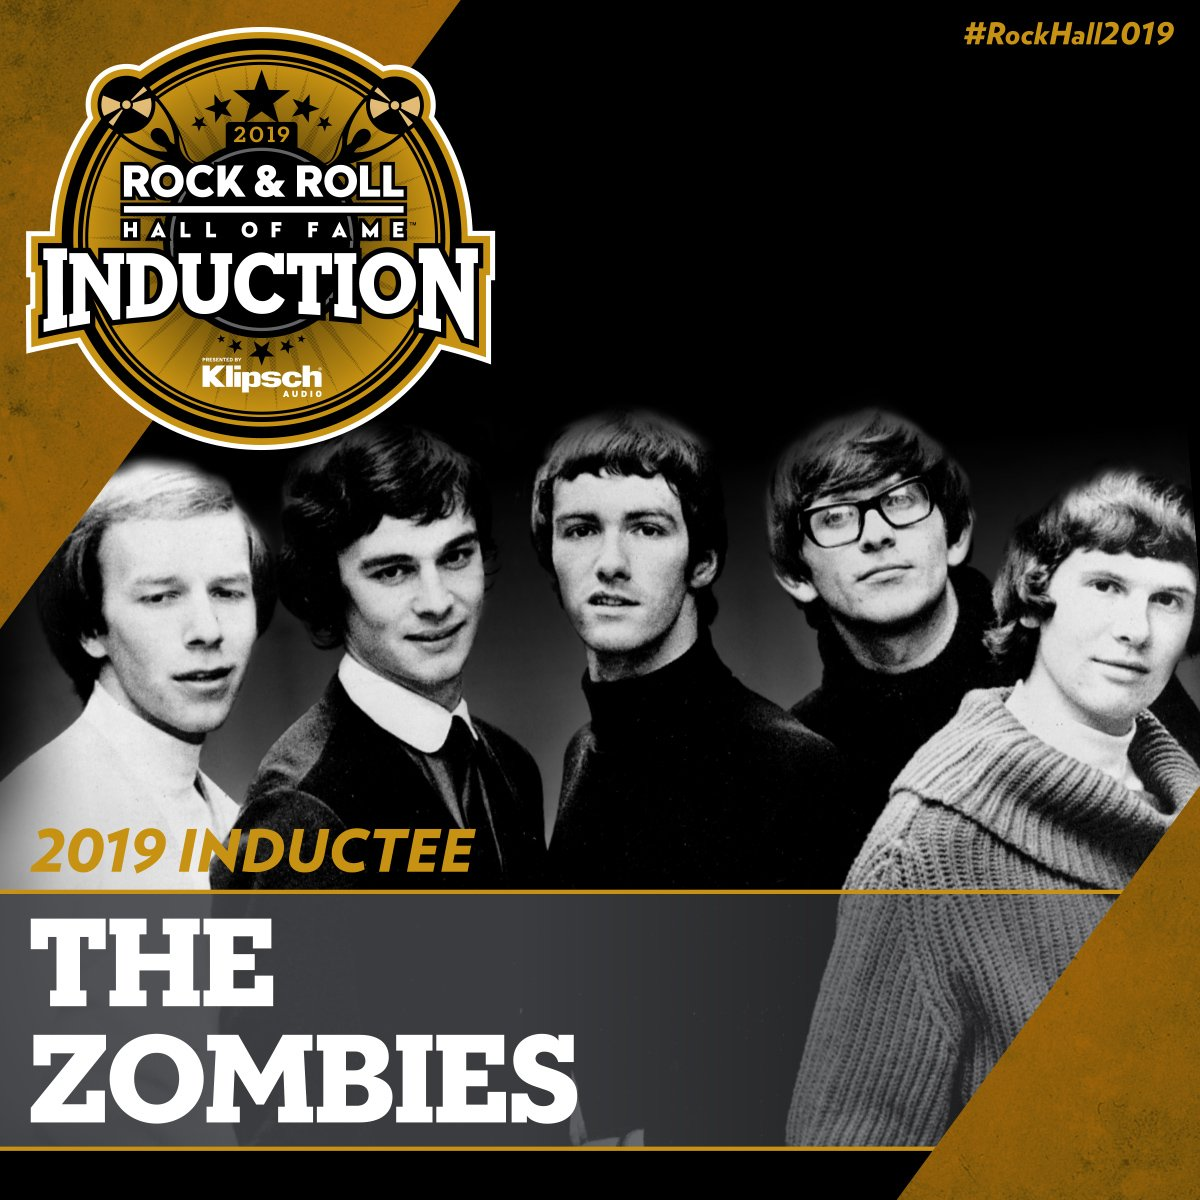 """The Zombies are @rockhall inductees!  """"This time to turn the corner and get inducted, feels fantastic … I'm just so delighted."""" - Rod  """"This is a career-defining [and] life-defining moment."""" - Colin"""